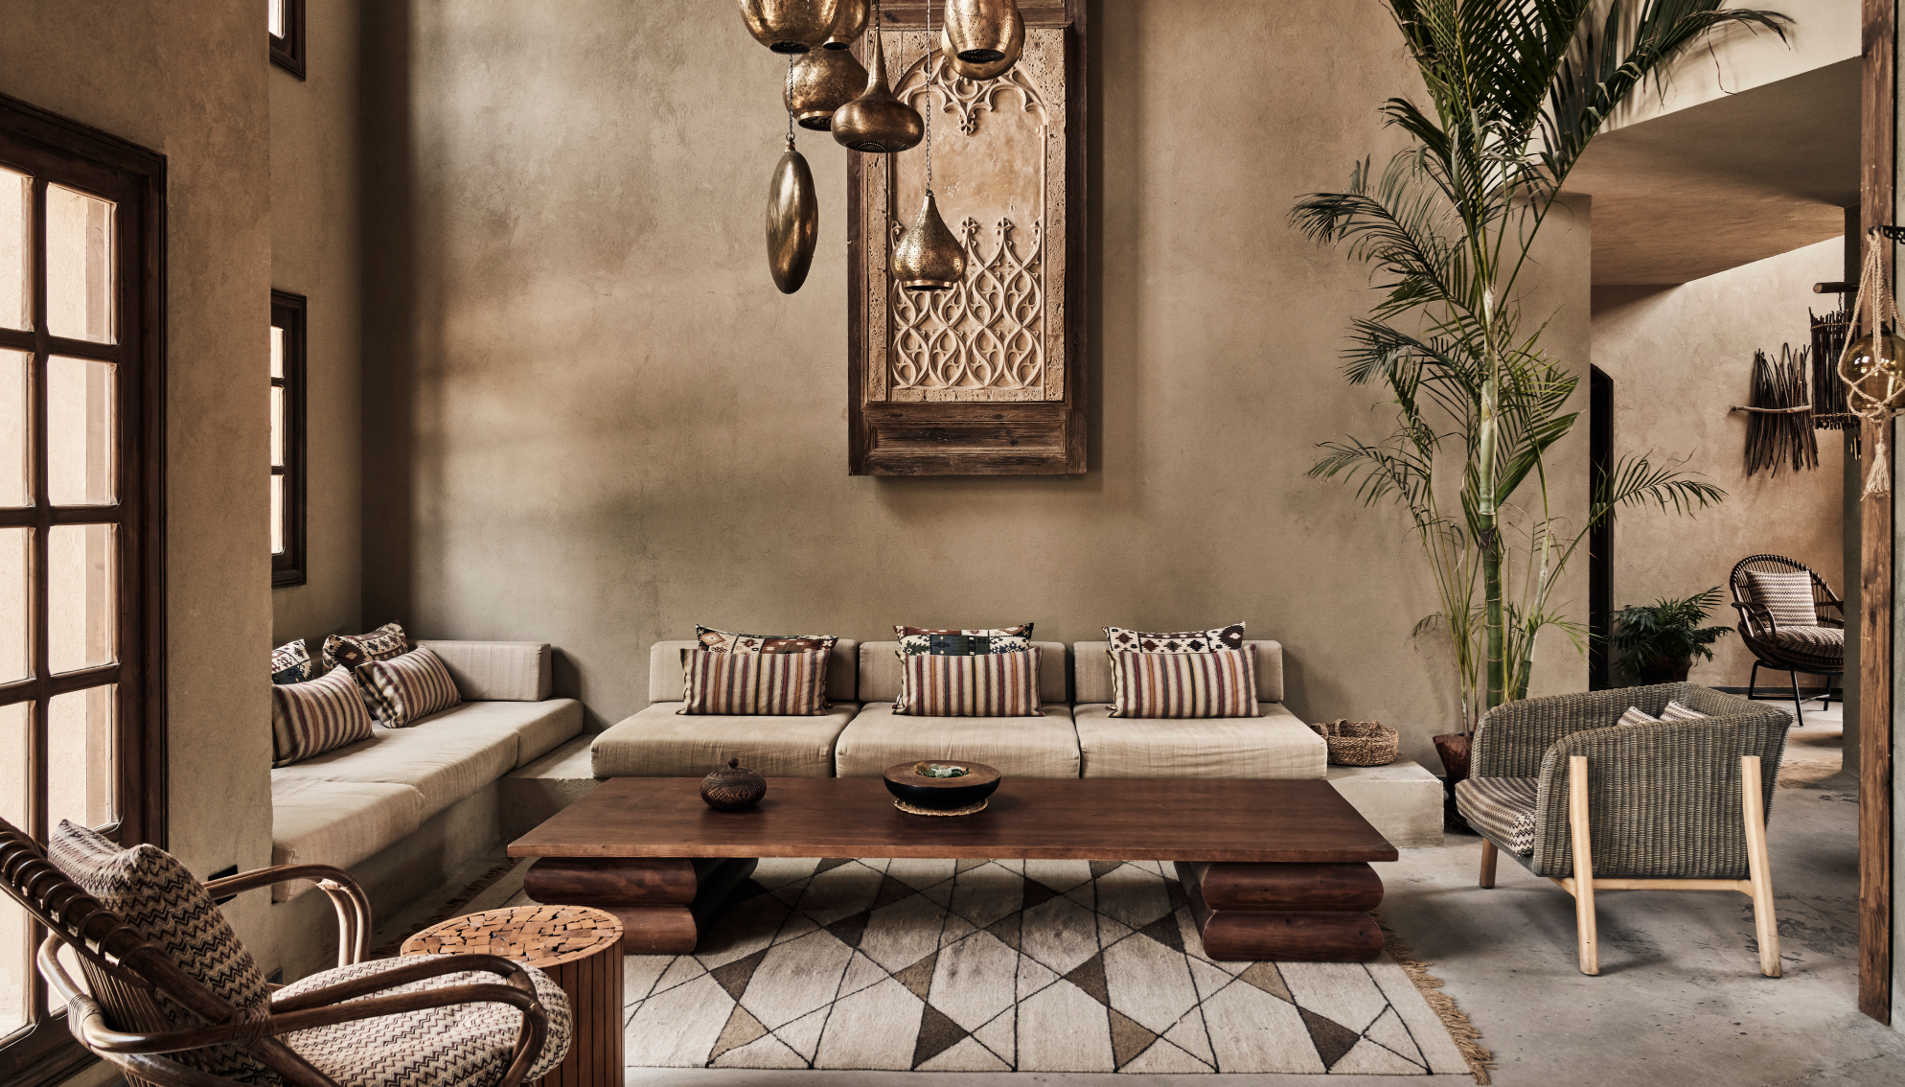 The interior of lobby at Cook's Club Hotel in El Gouna in a boho style